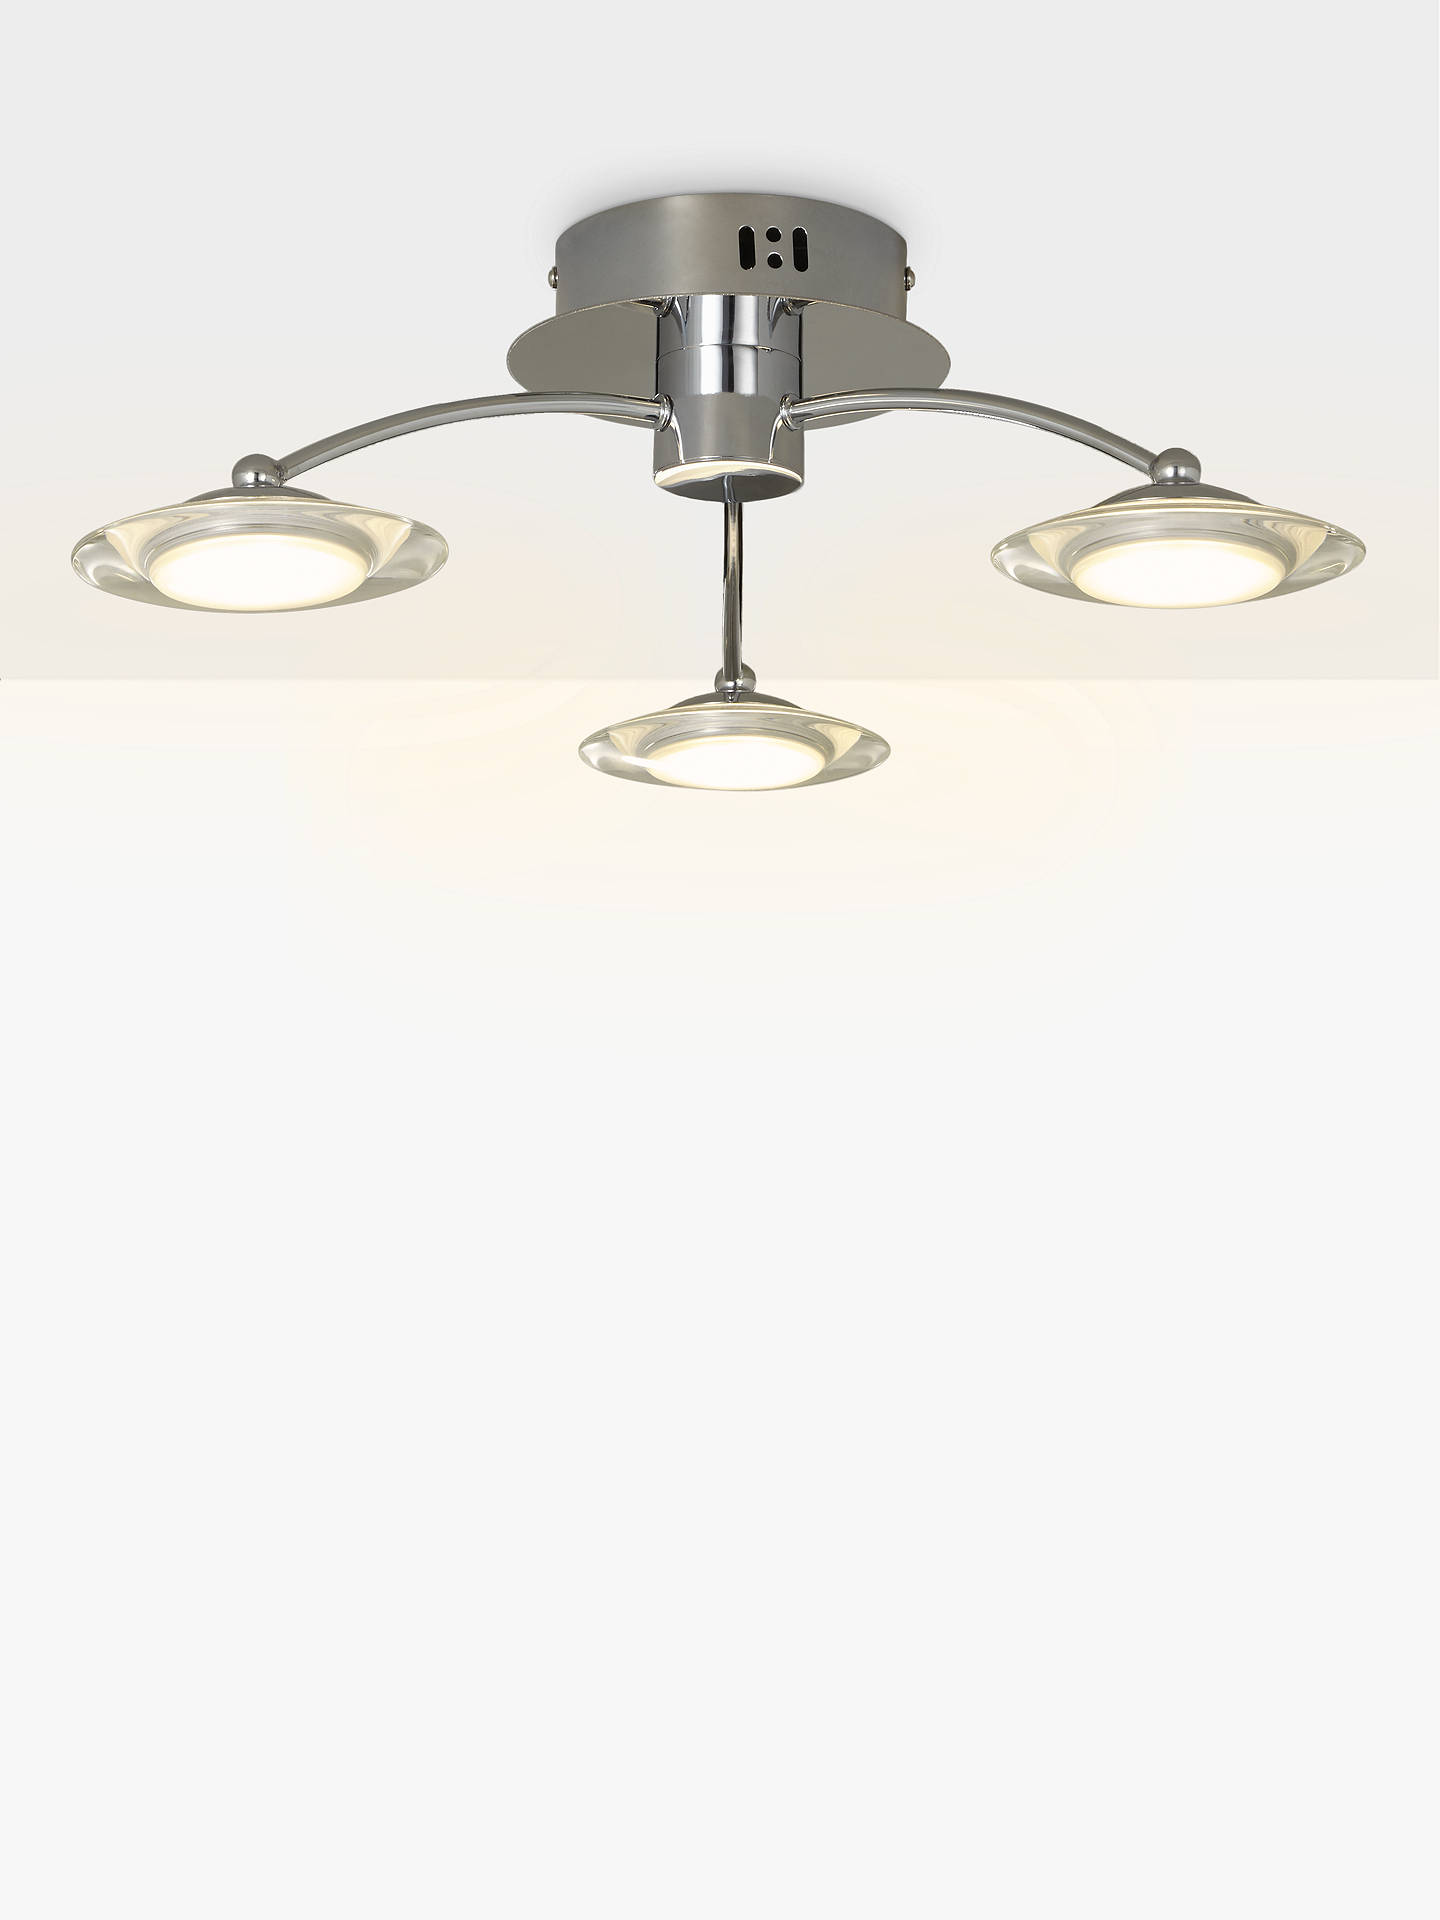 Buy John Lewis & Partners Jasper LED Semi Flush 3 Arm Ceiling Light, Chrome Online at johnlewis.com